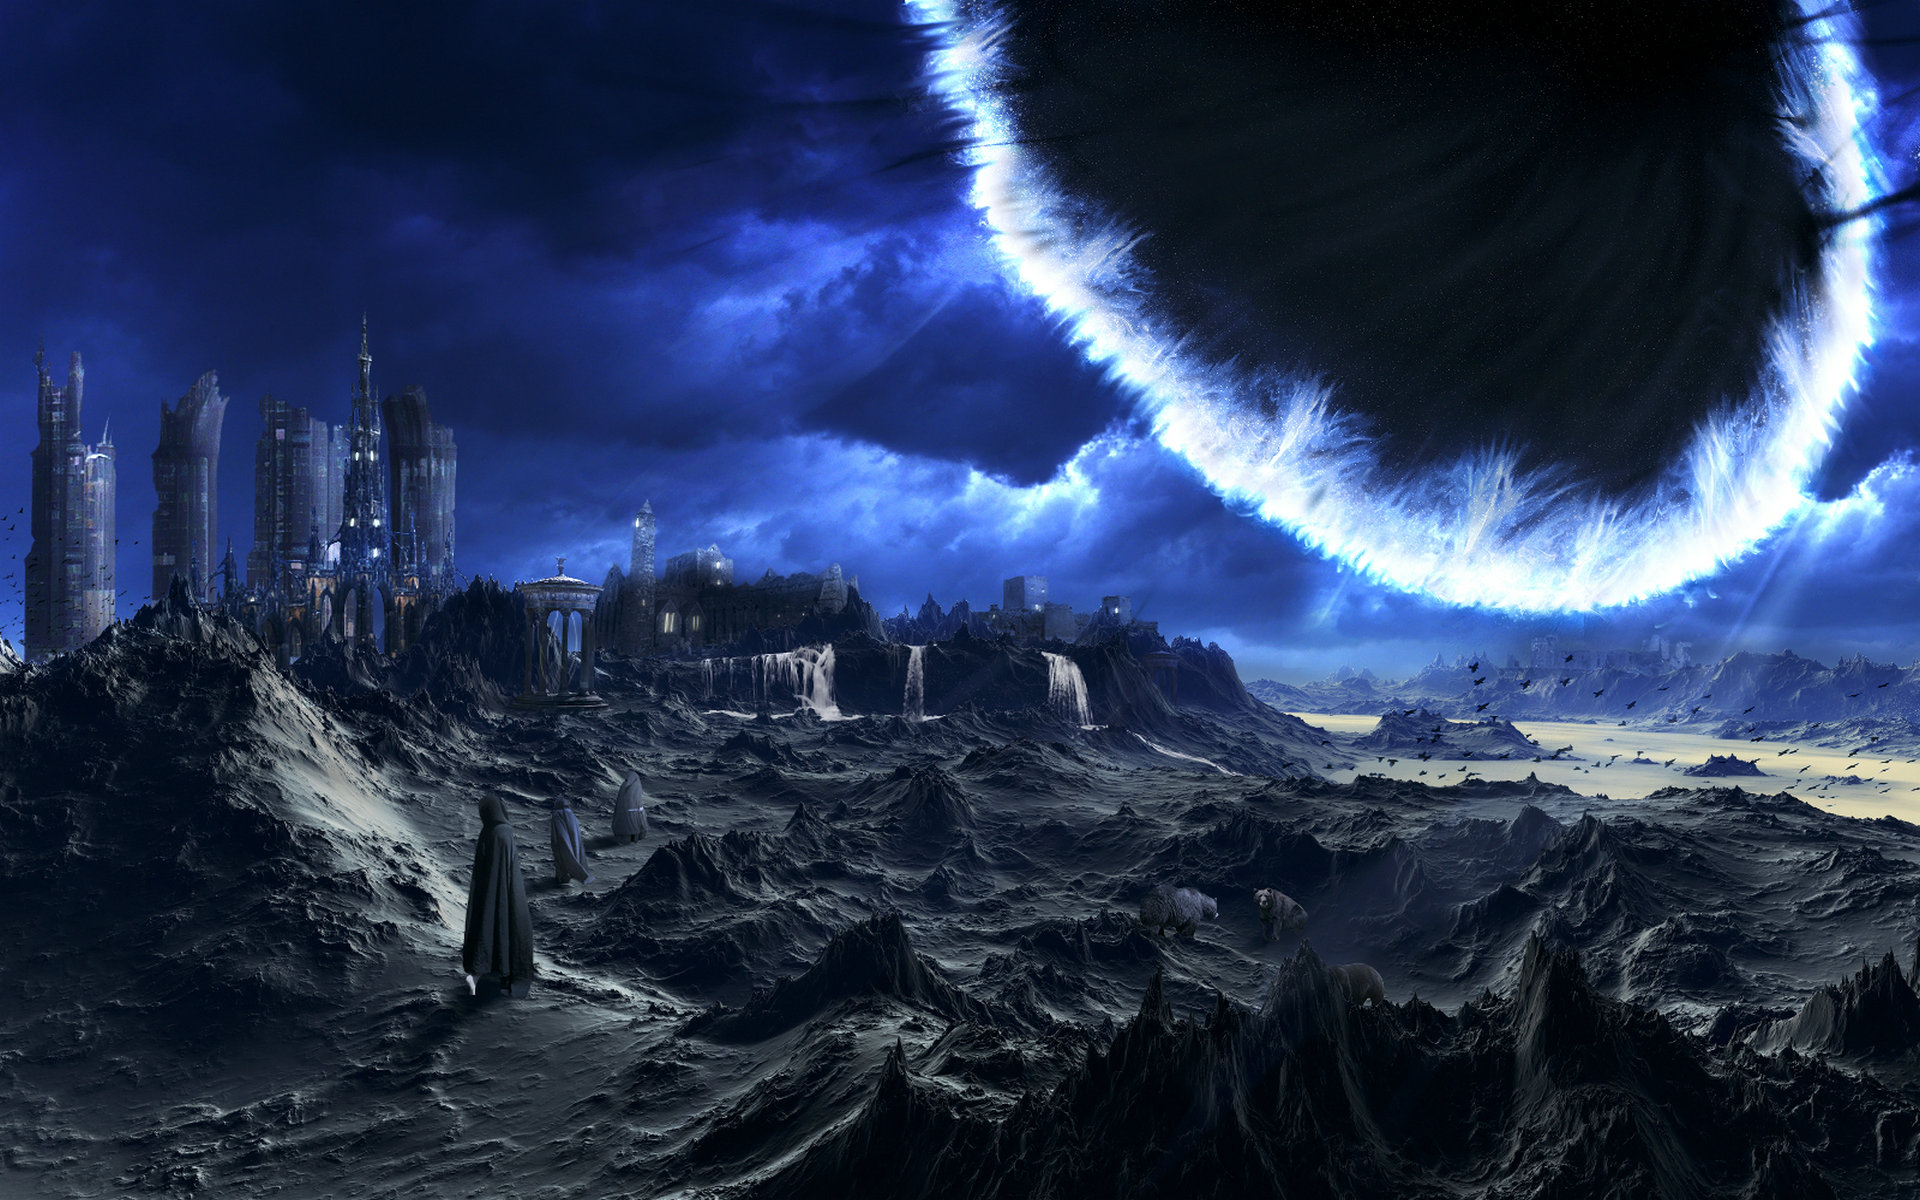 magic-world-ruins-blue-ray-wallpaper-1920x1200.jpg